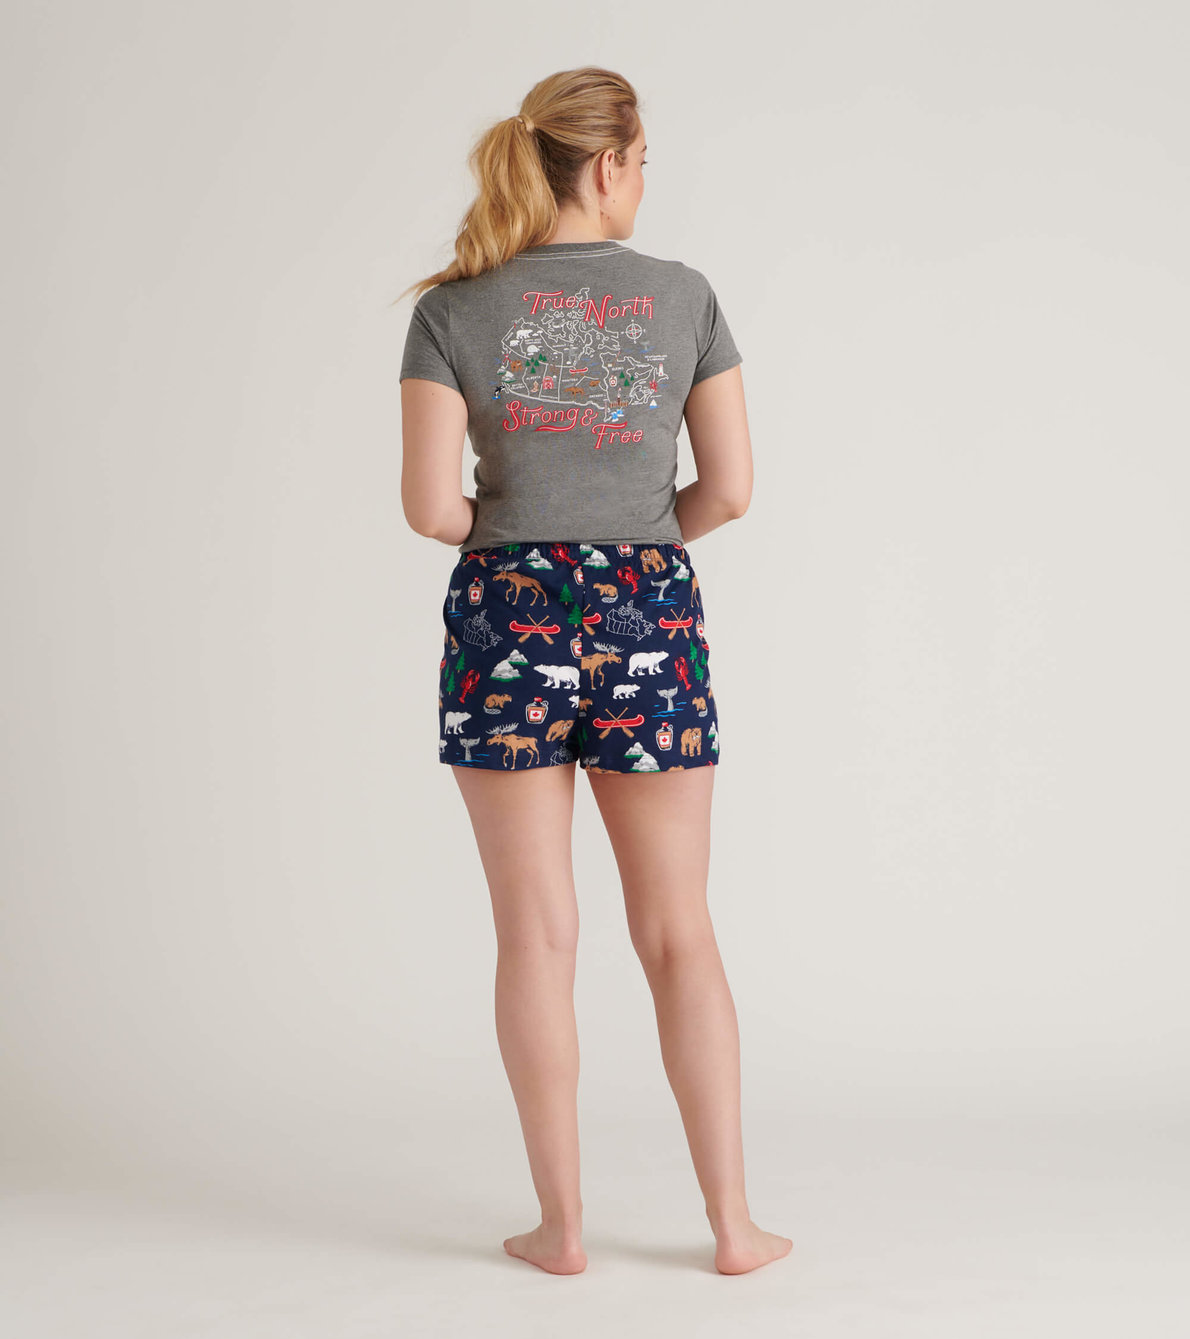 View larger image of True North Women's Pajama Tee